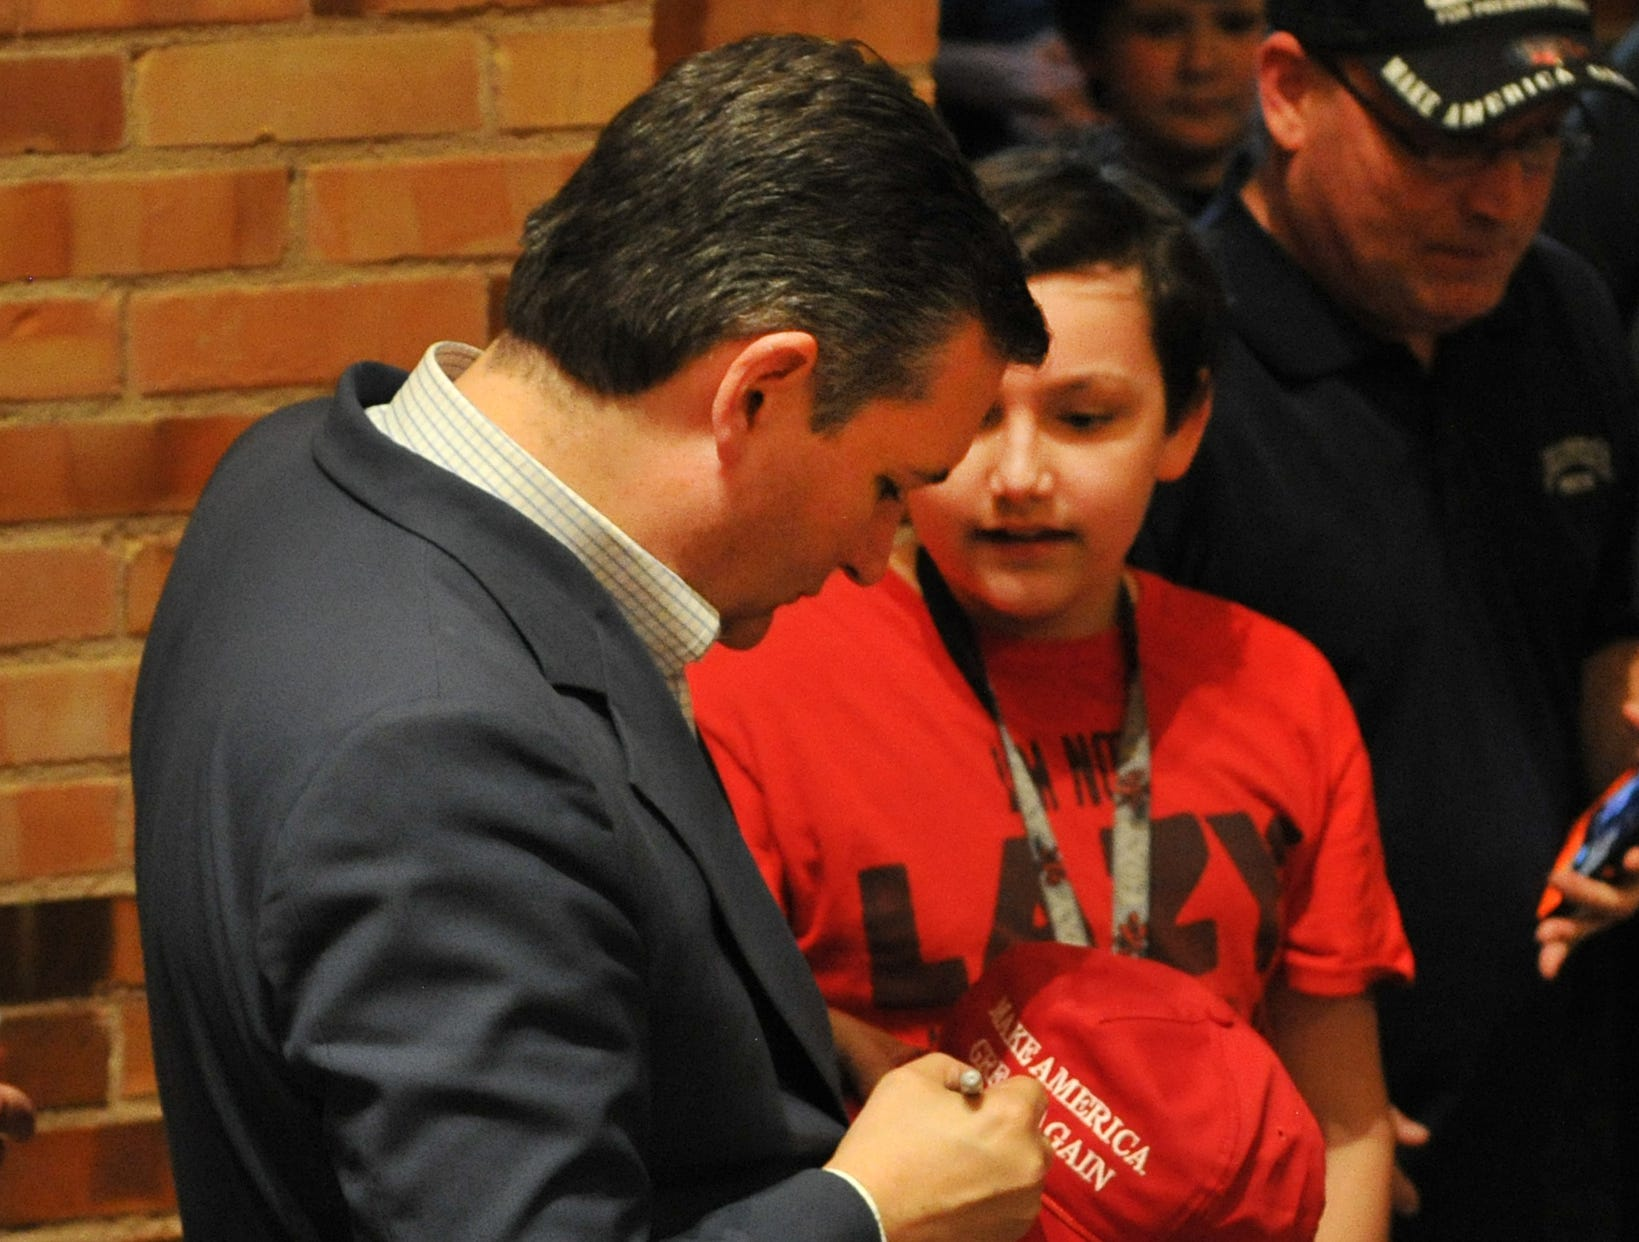 Texas Senator, Ted Cruz gave autographs during his re-election stop at Midwestern State University in Wichita Falls Thursday evening.